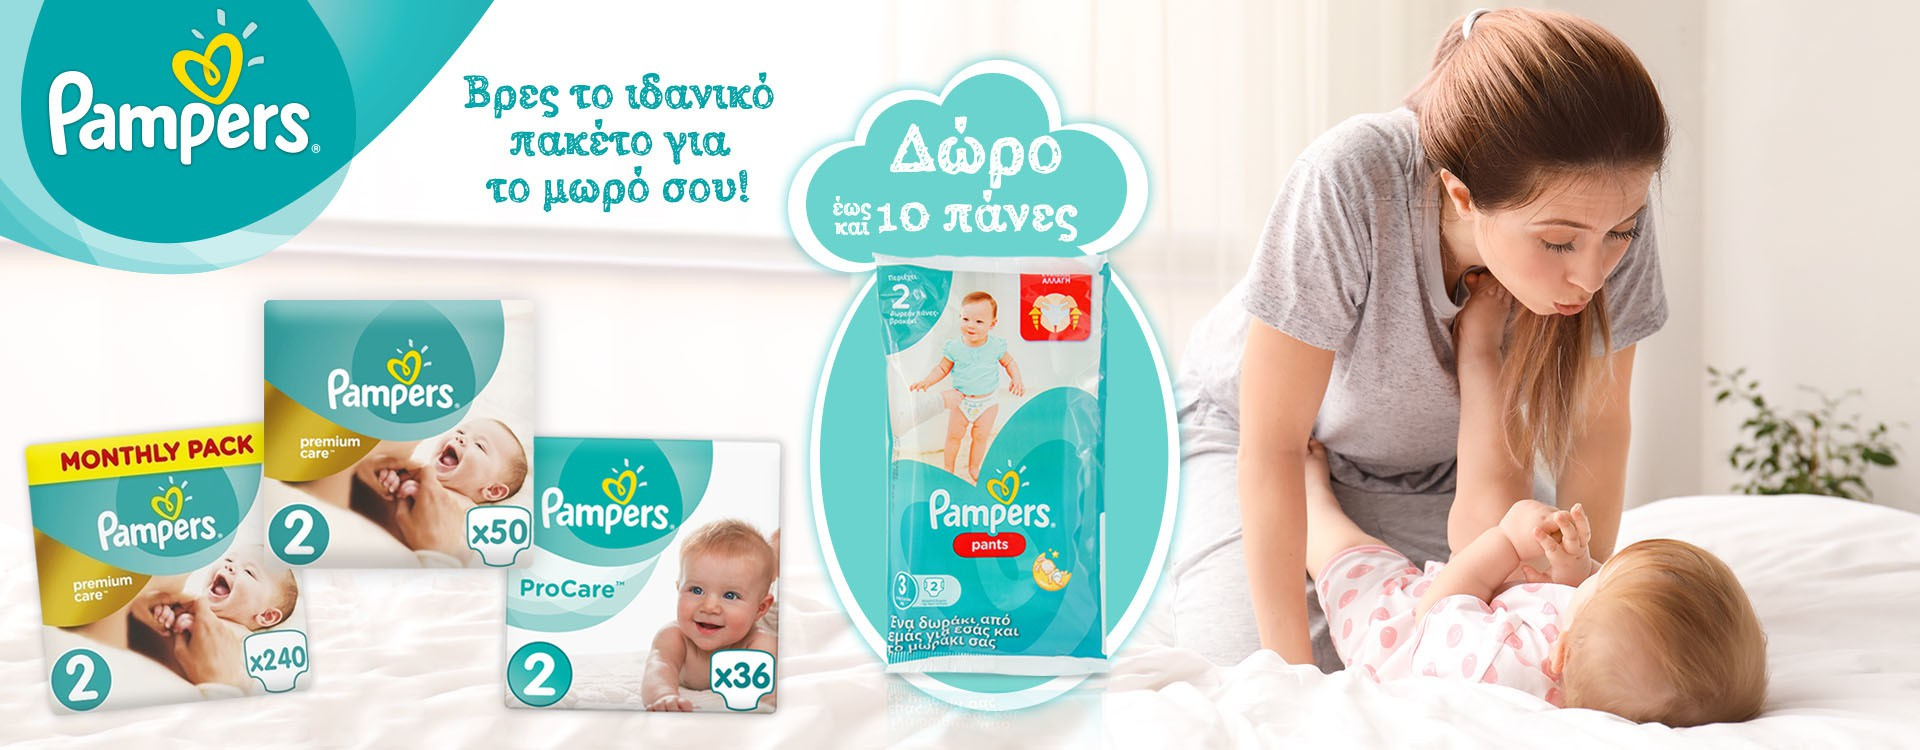 Slider pampers jun18 1920x750